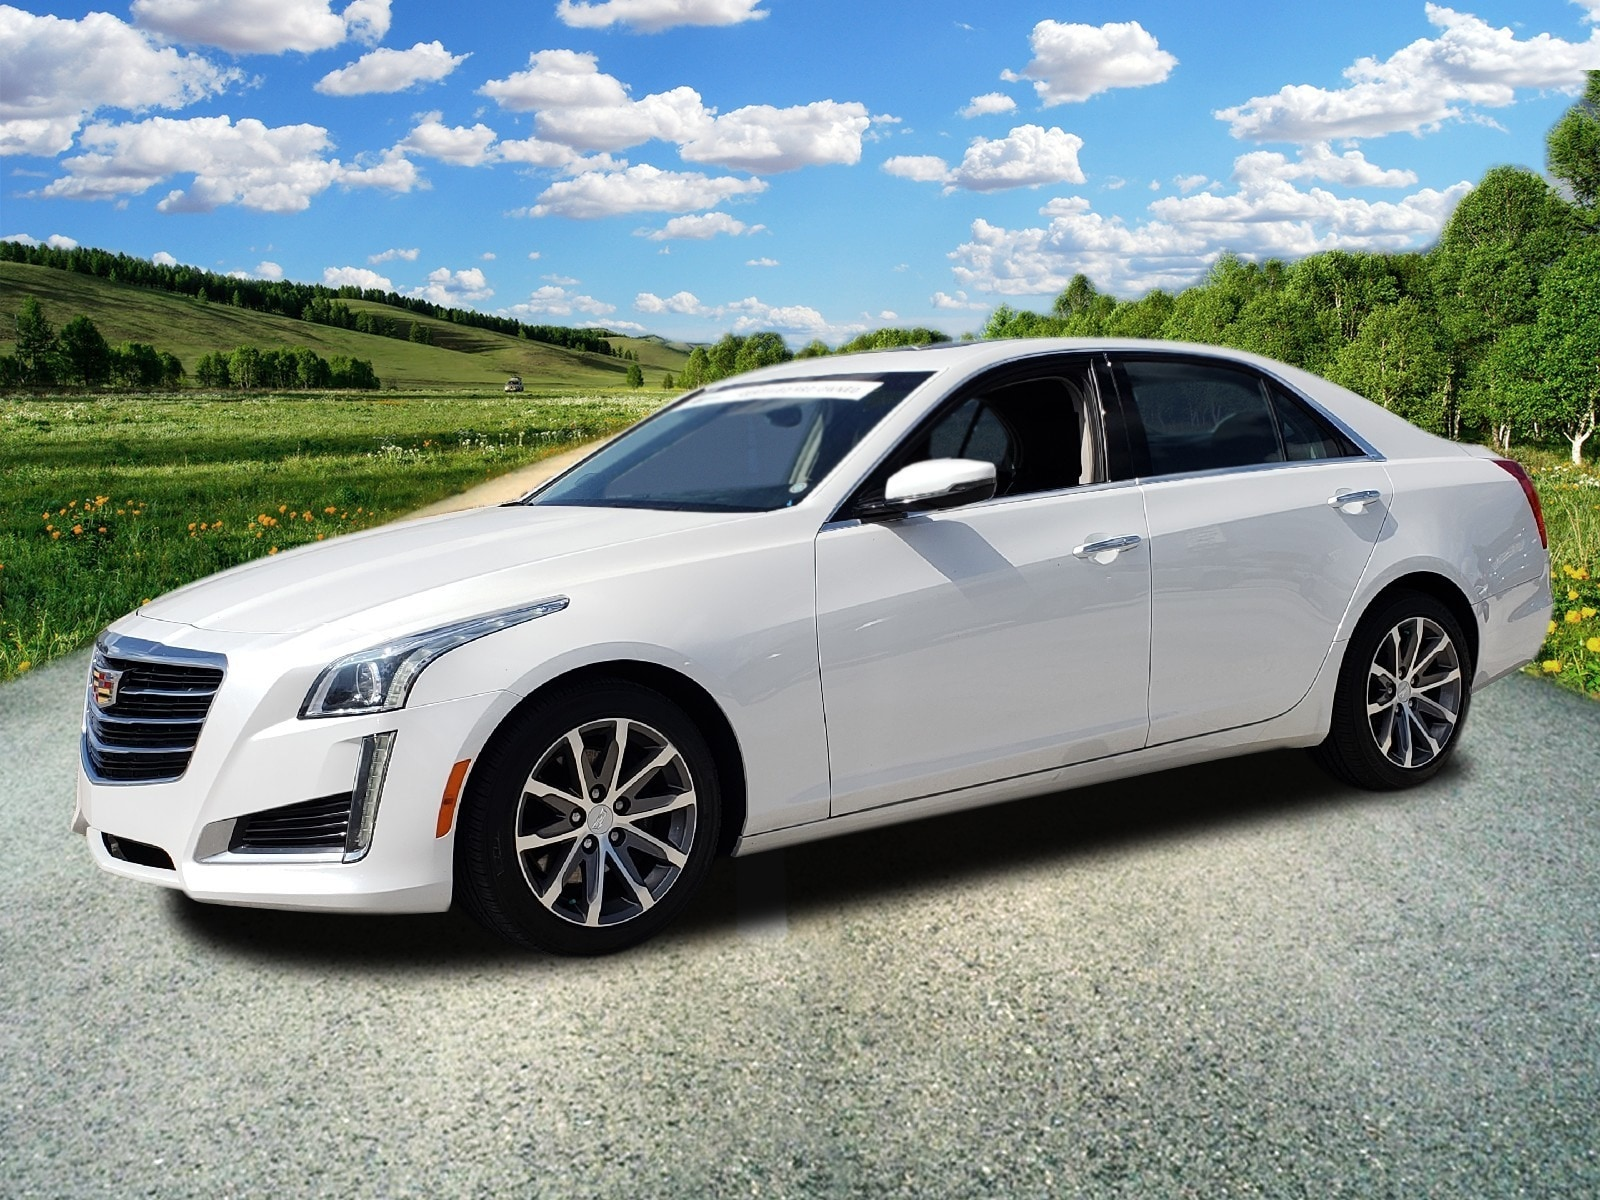 Cadillac CTS 3-6 Luxury